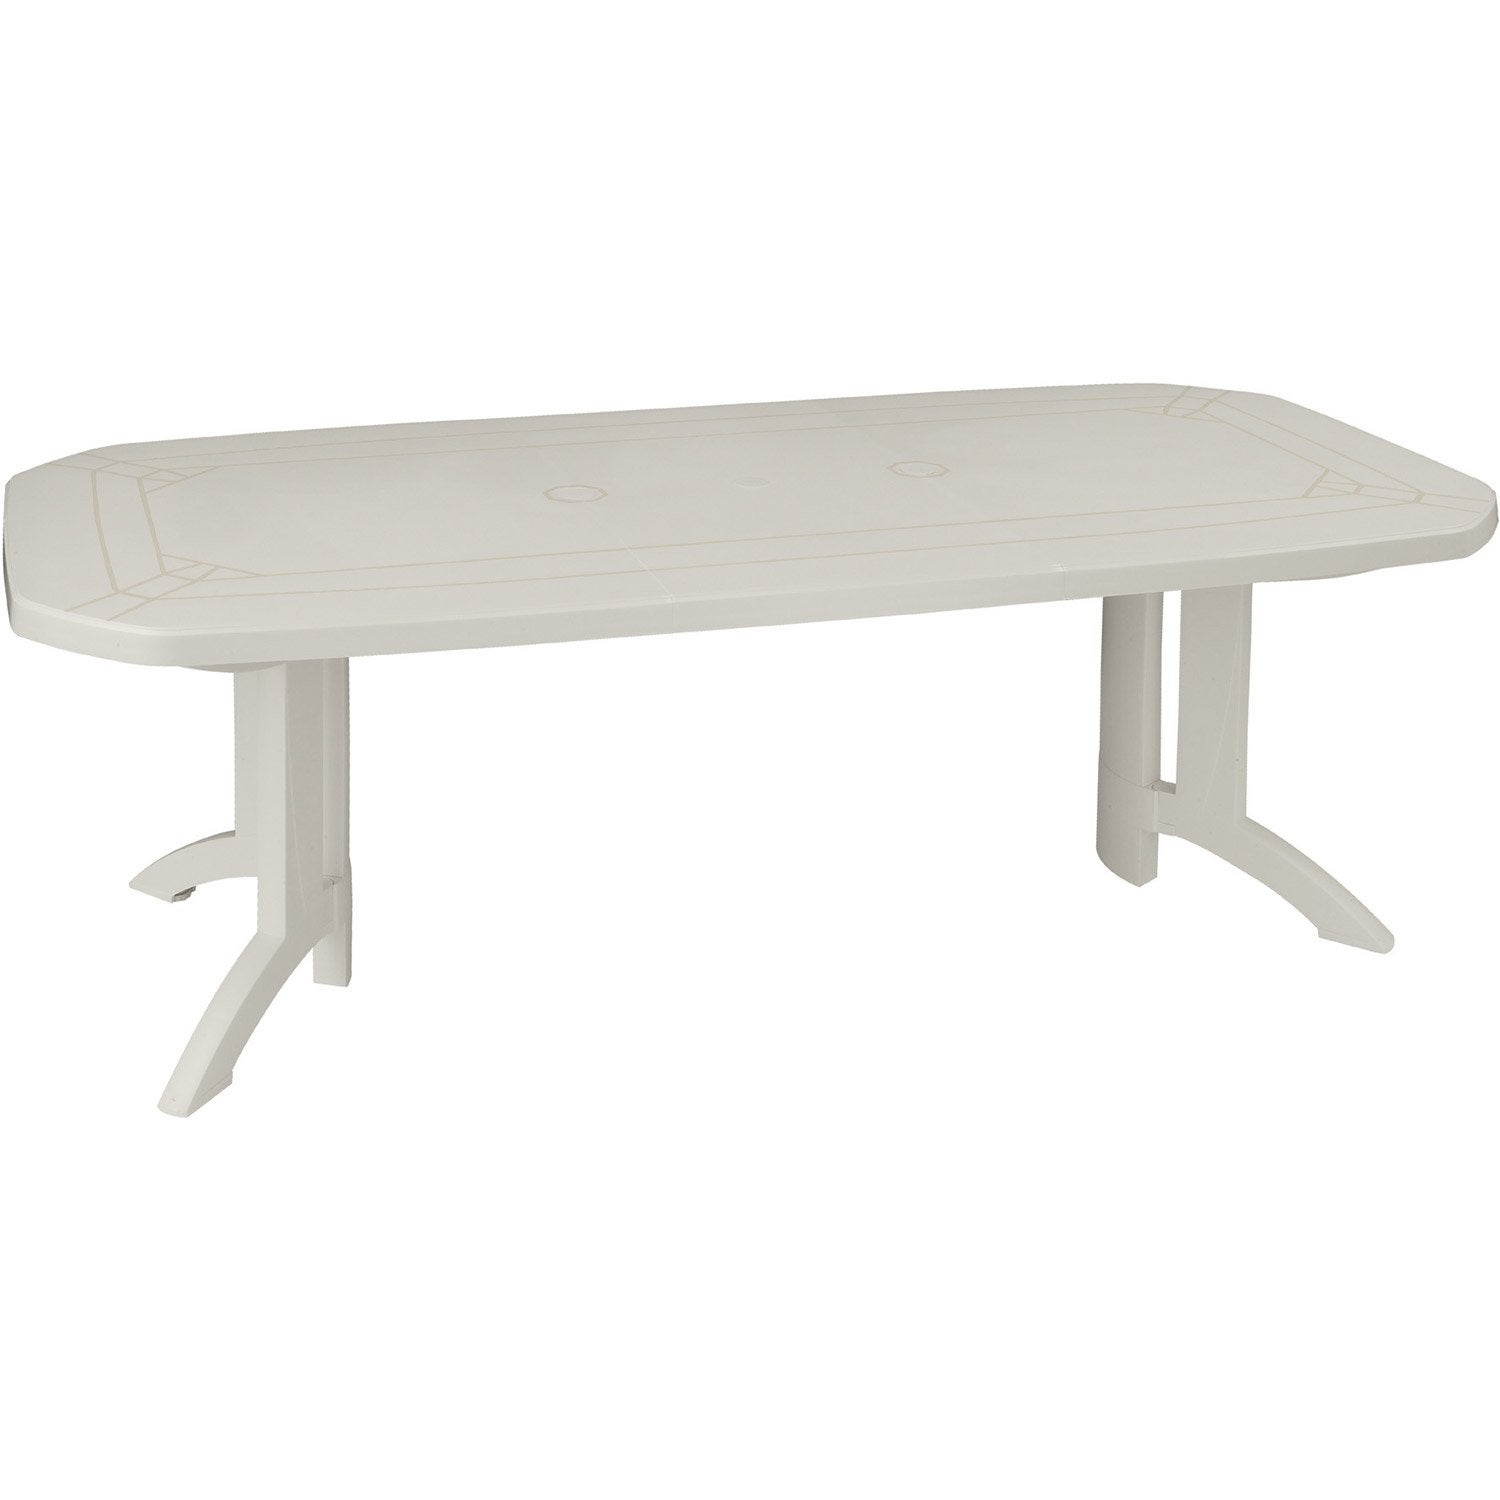 Table De Jardin Grosfillex V Ga Rectangulaire Blanc 10